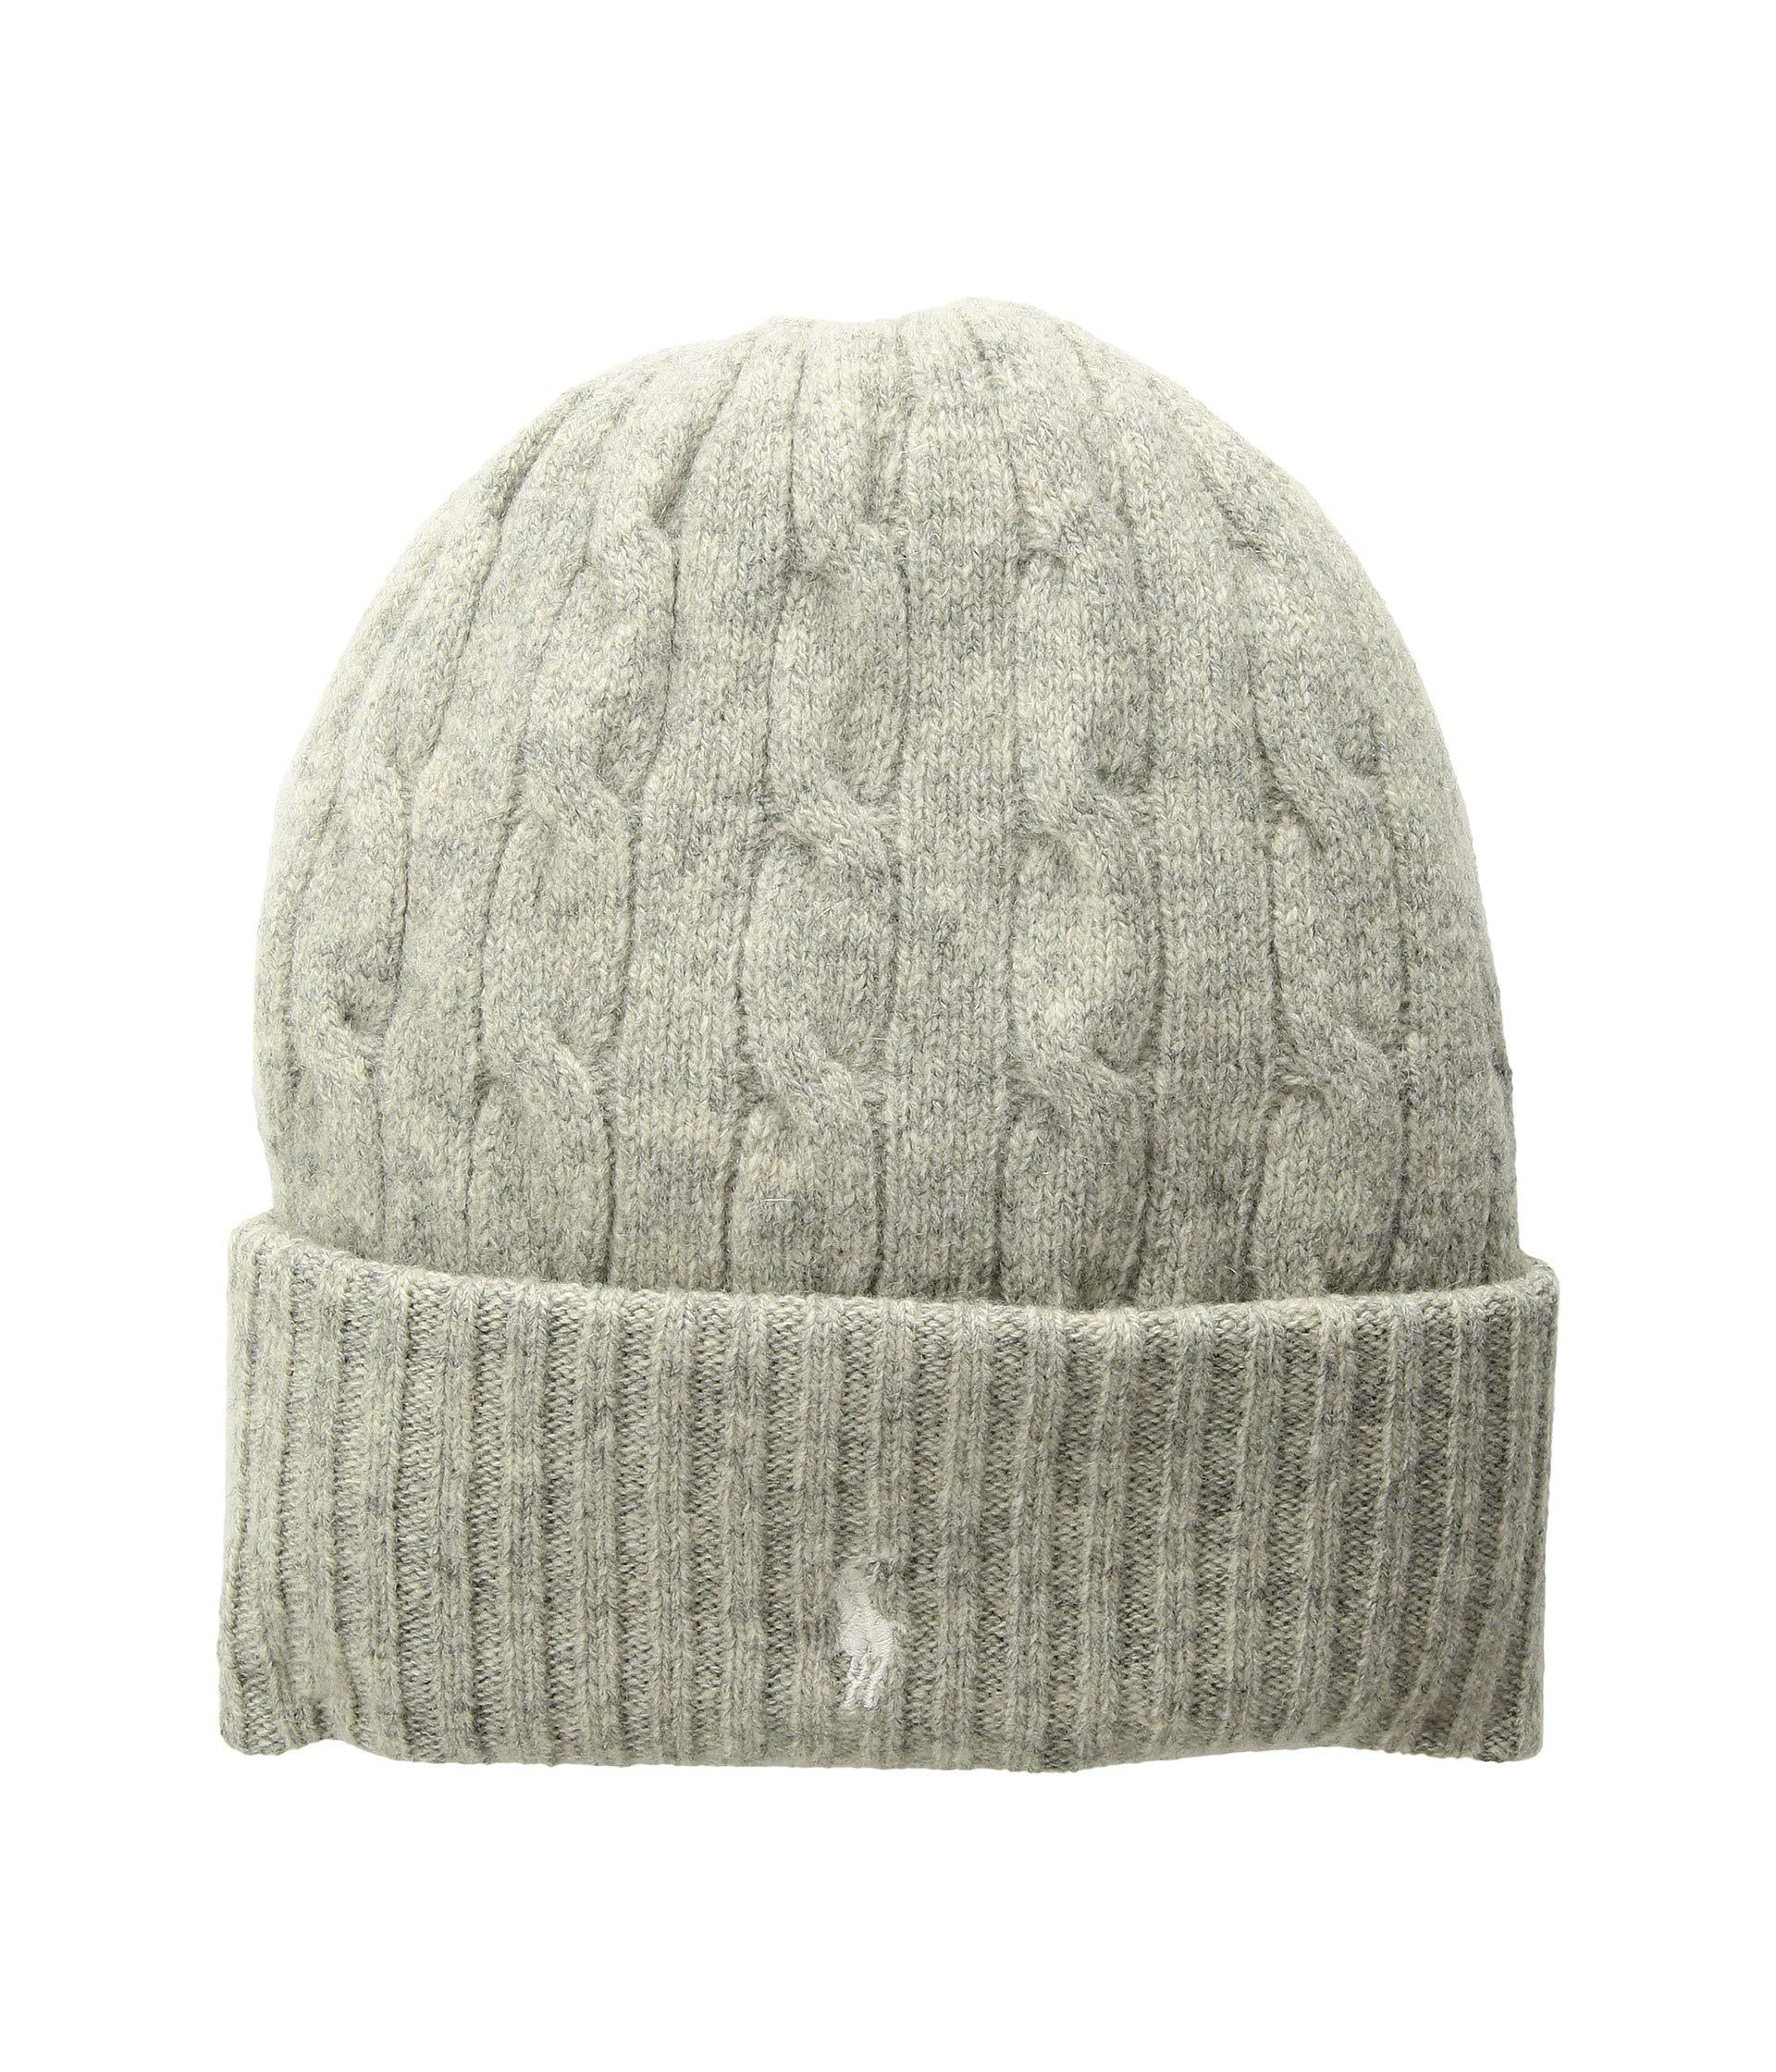 e015c908348 Lyst - Polo Ralph Lauren Wool Cashmere Classic Cable Cuff Hat ...